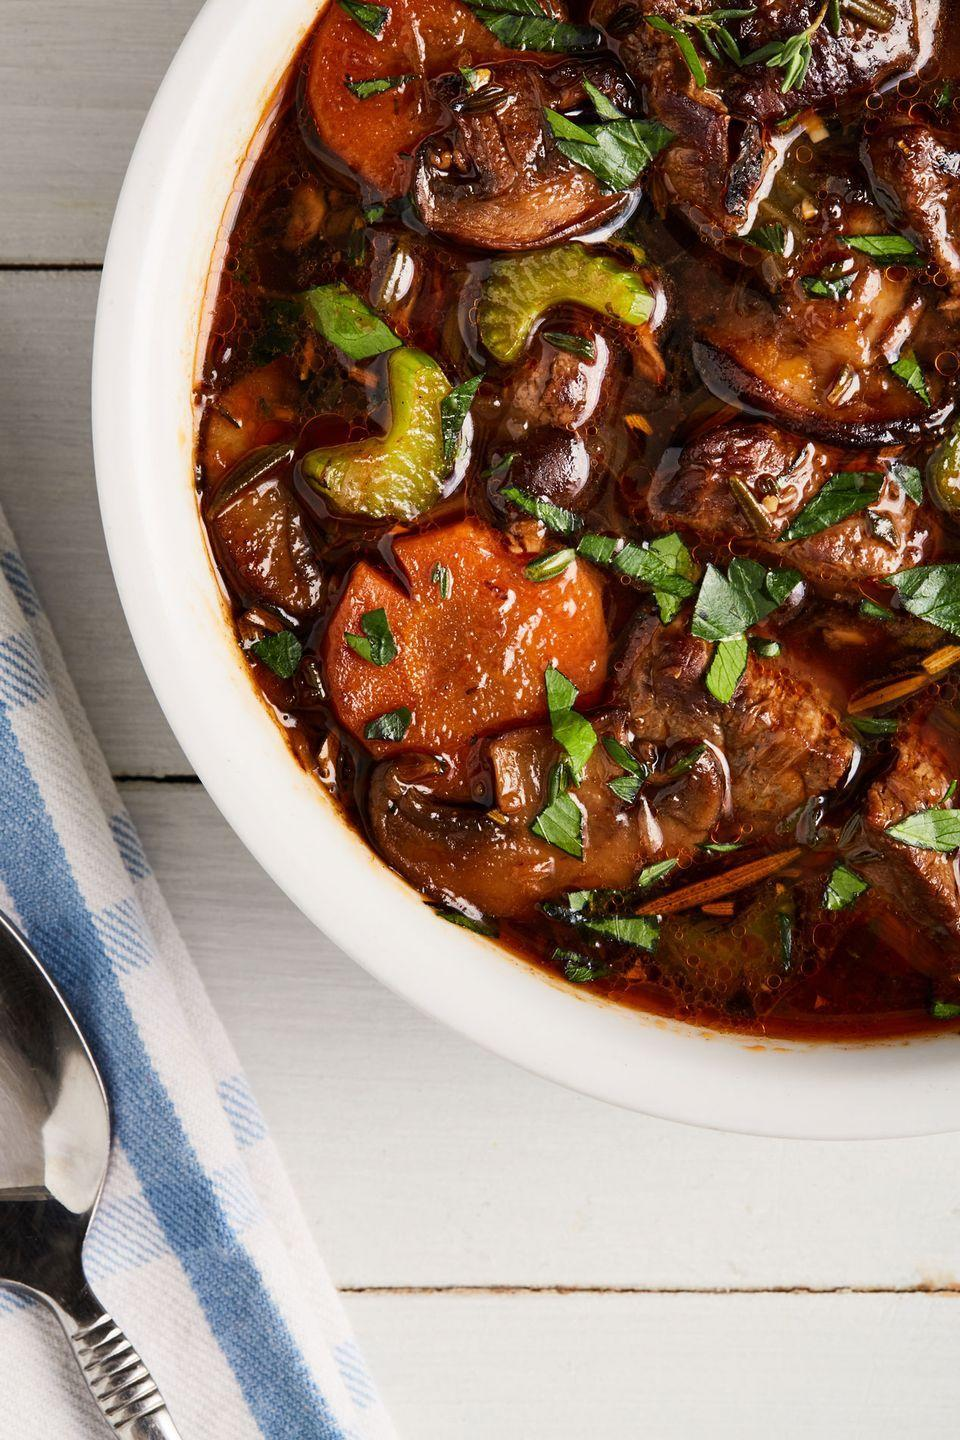 """<p>Doesn't get much better than this!</p><p>Get the recipe from <a href=""""https://www.delish.com/cooking/recipe-ideas/a30996215/keto-beef-stew-recipe/"""" rel=""""nofollow noopener"""" target=""""_blank"""" data-ylk=""""slk:Delish."""" class=""""link rapid-noclick-resp"""">Delish.</a></p>"""